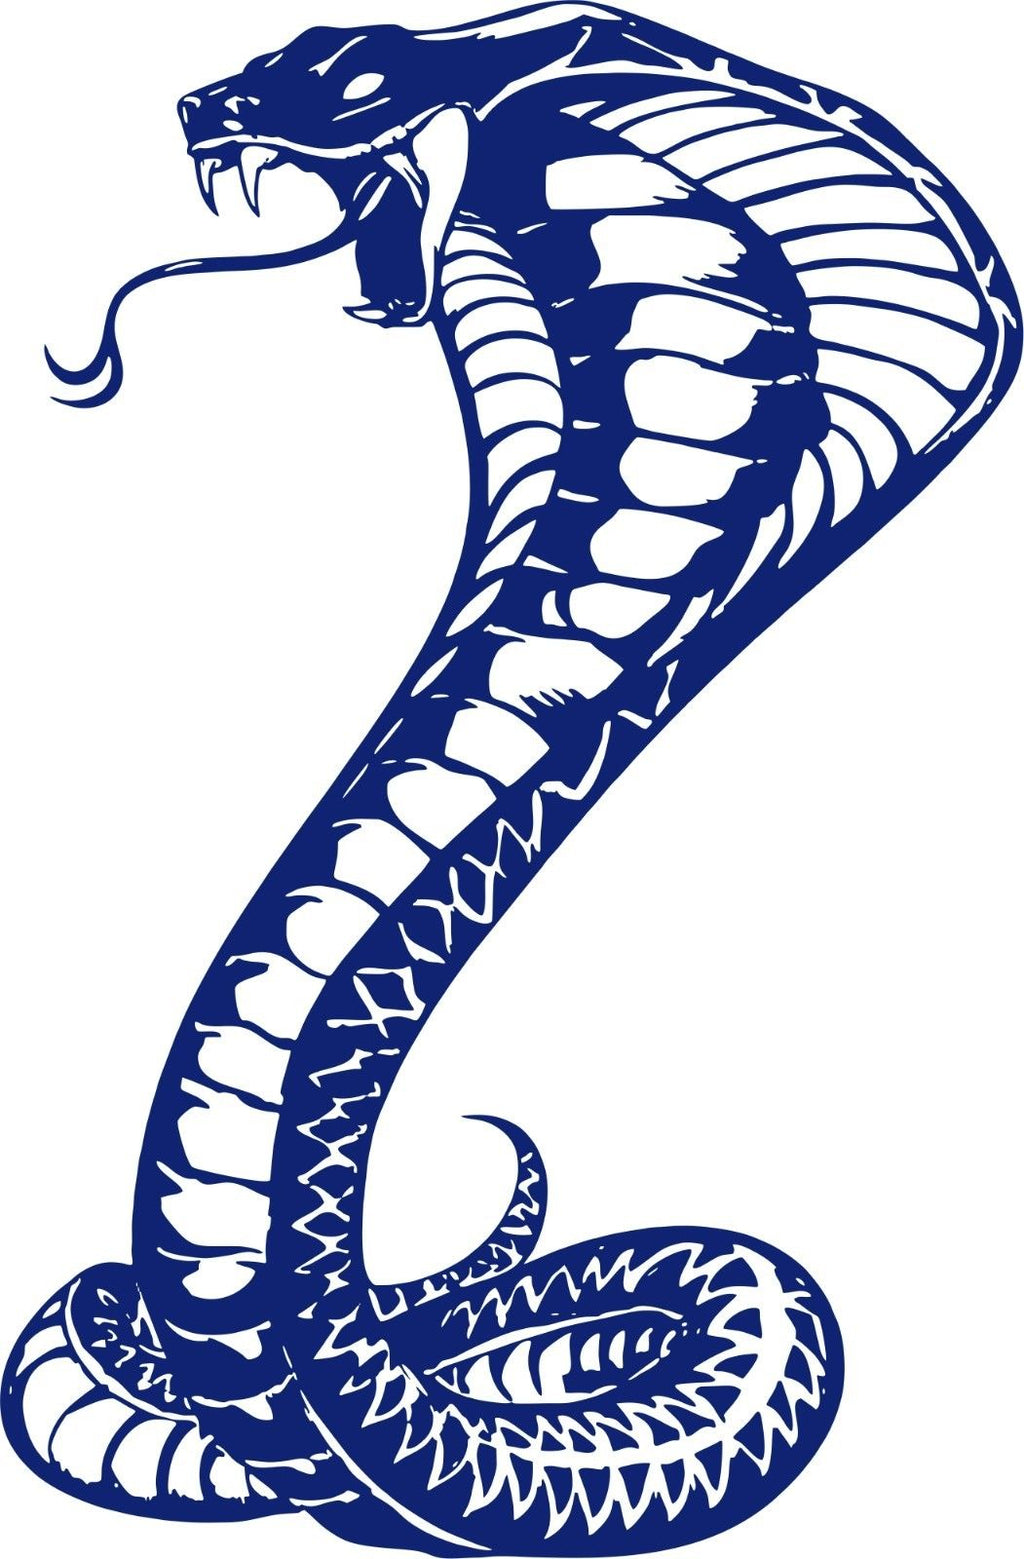 "Large Snake Naja Cobra Serpent Reptile Car Truck Boat Window Vinyl Decal Sticker - 20"" x 30.5"""